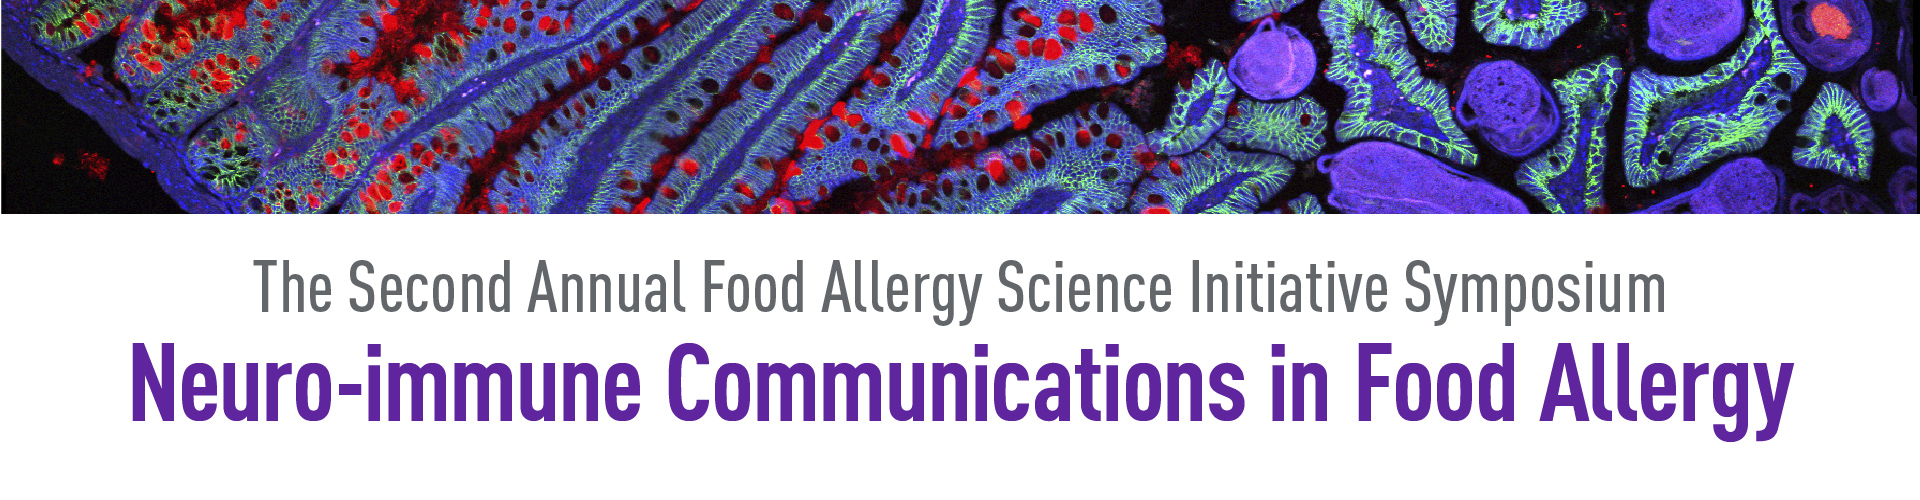 More Information: 2nd Annual Food Allergy Science Initiative